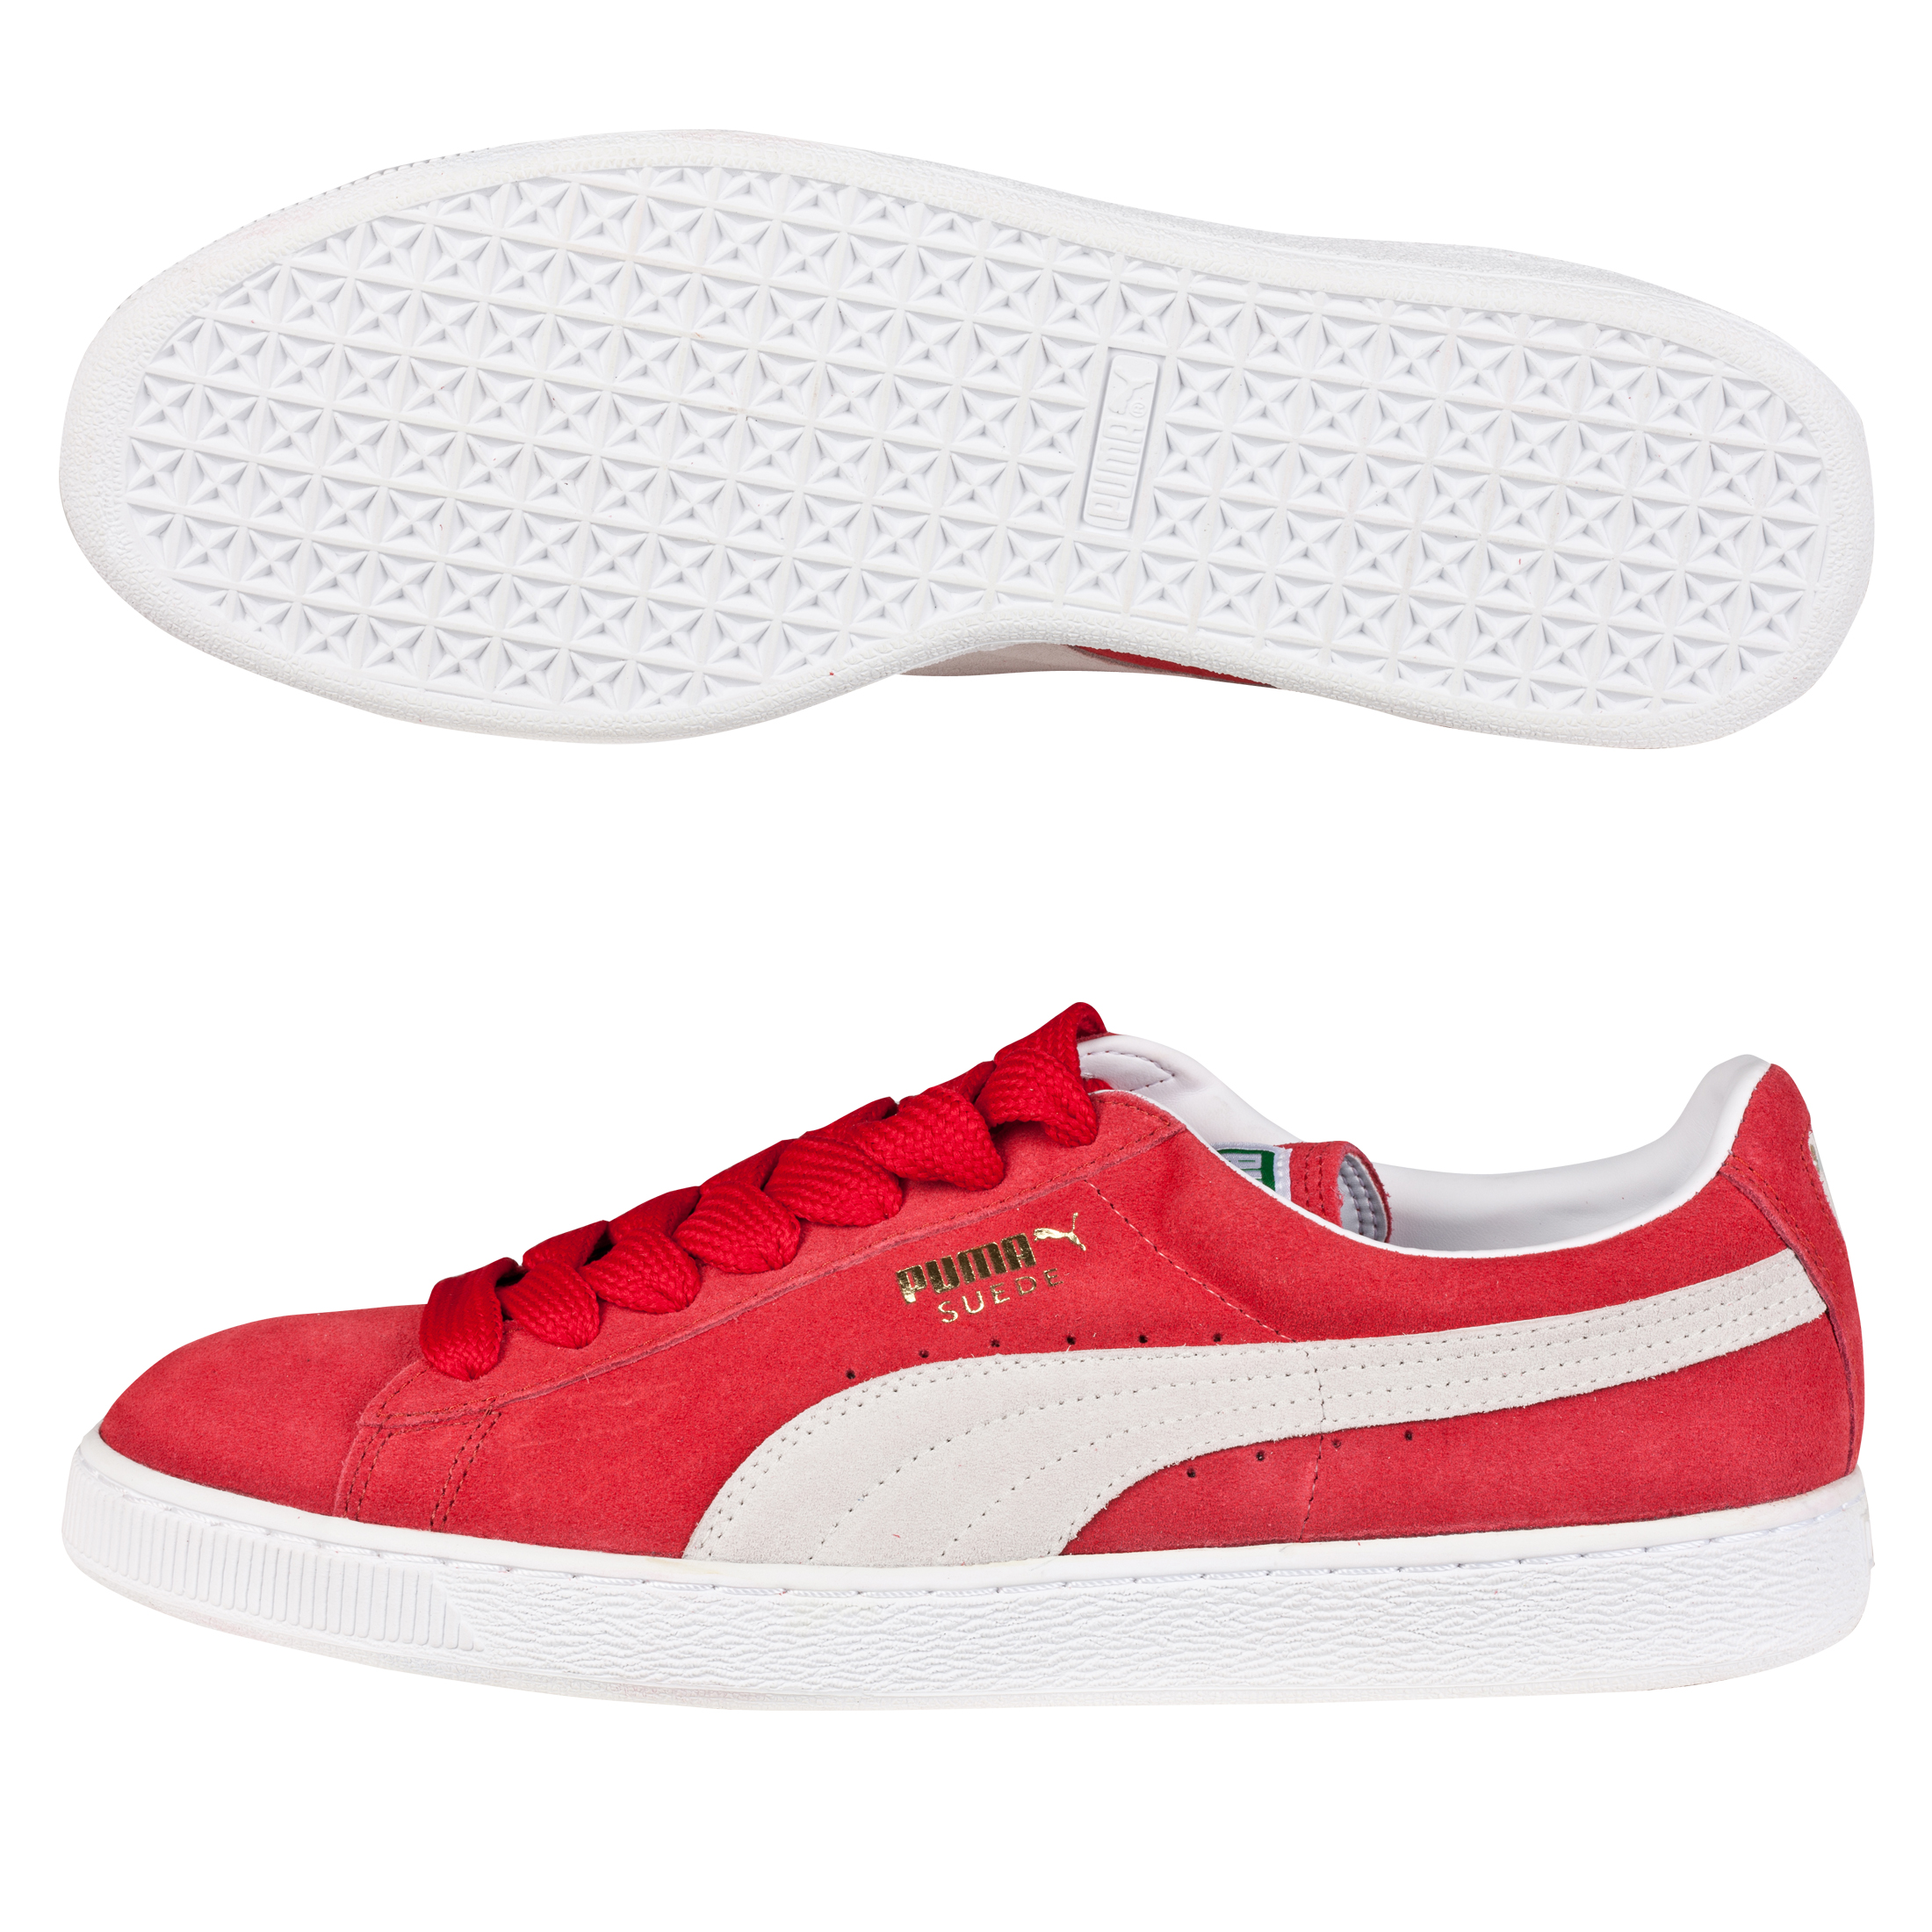 Puma Suede Classic Eco Trainer - Team Regal Red/White